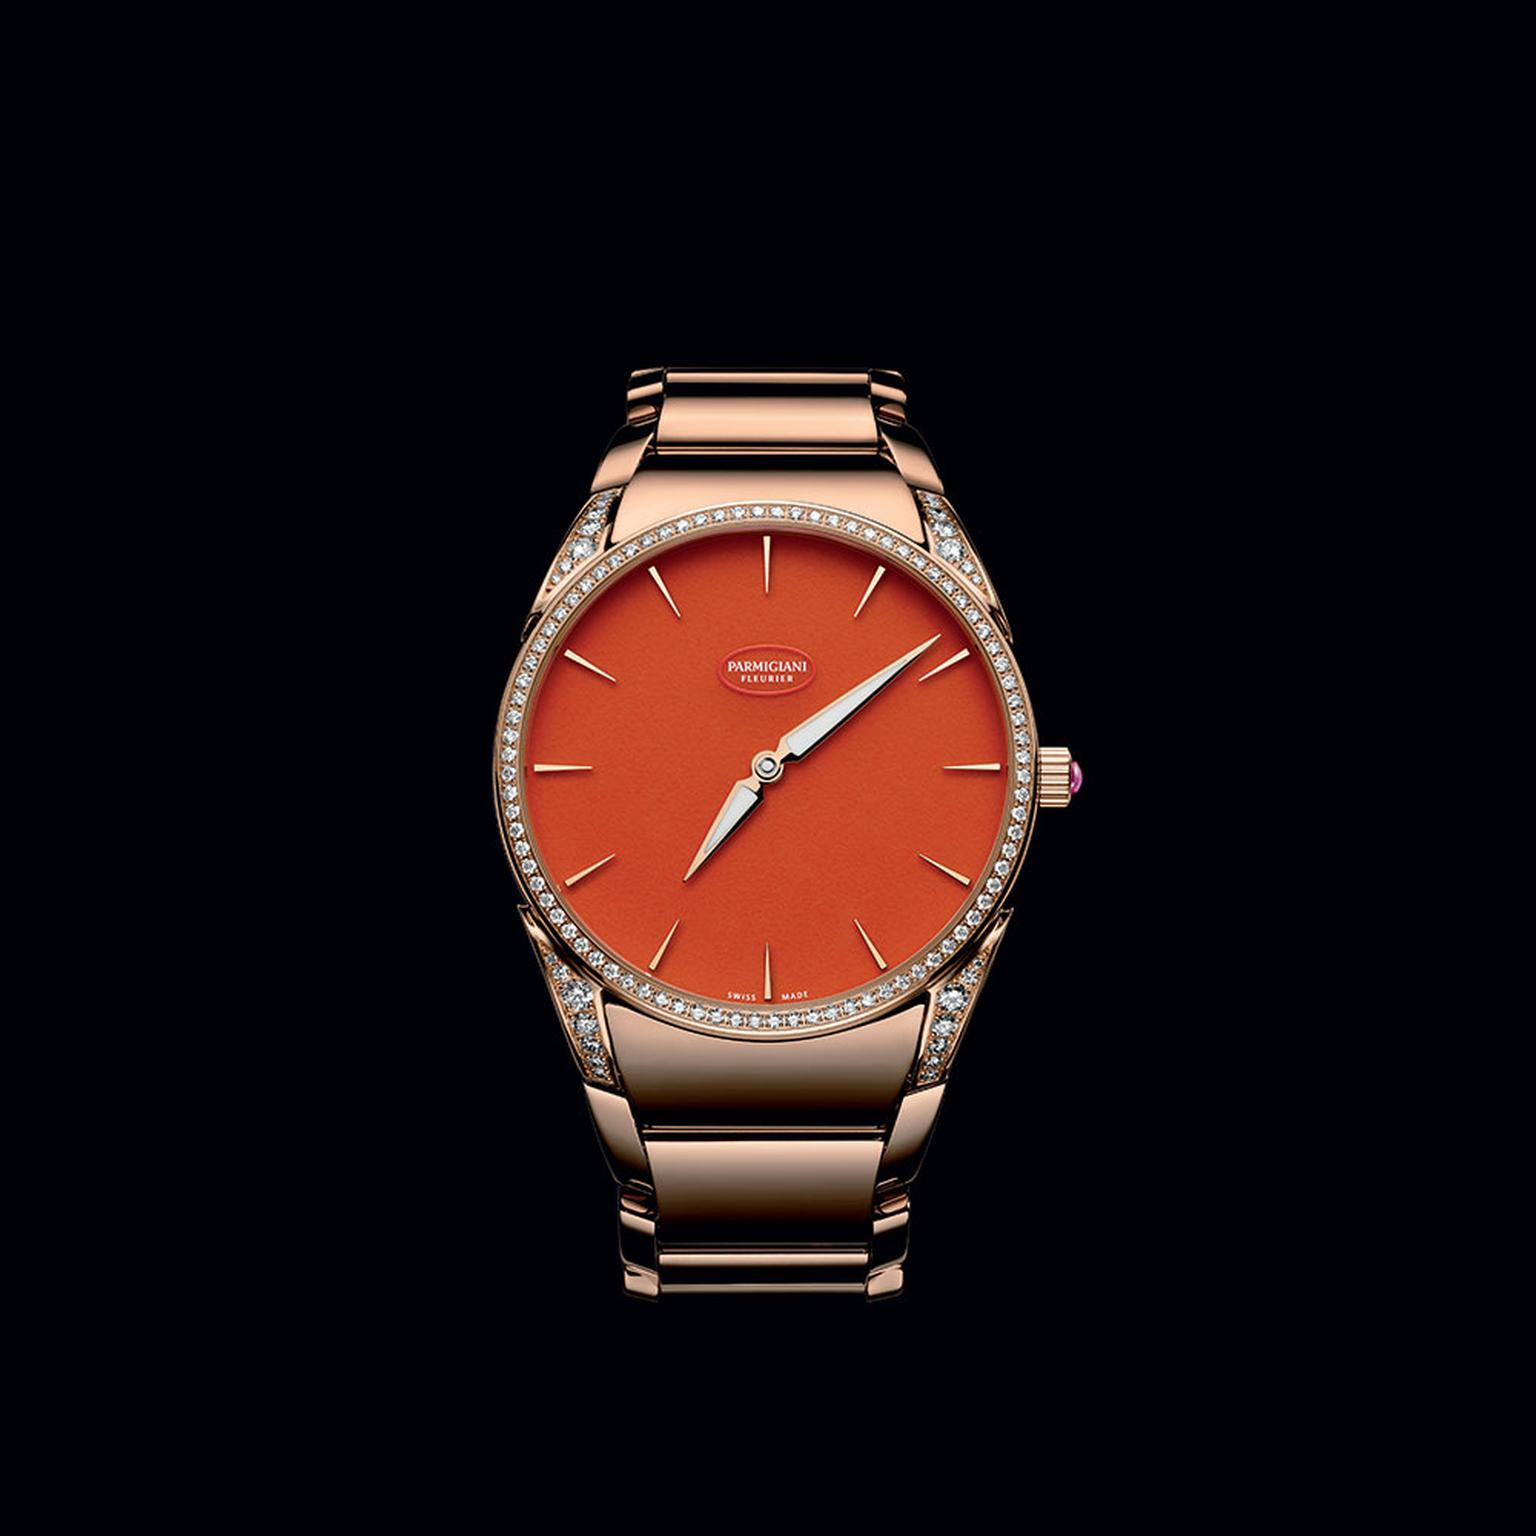 Parmiginai Tonda 1950 Poppy watch with an aventurine dial